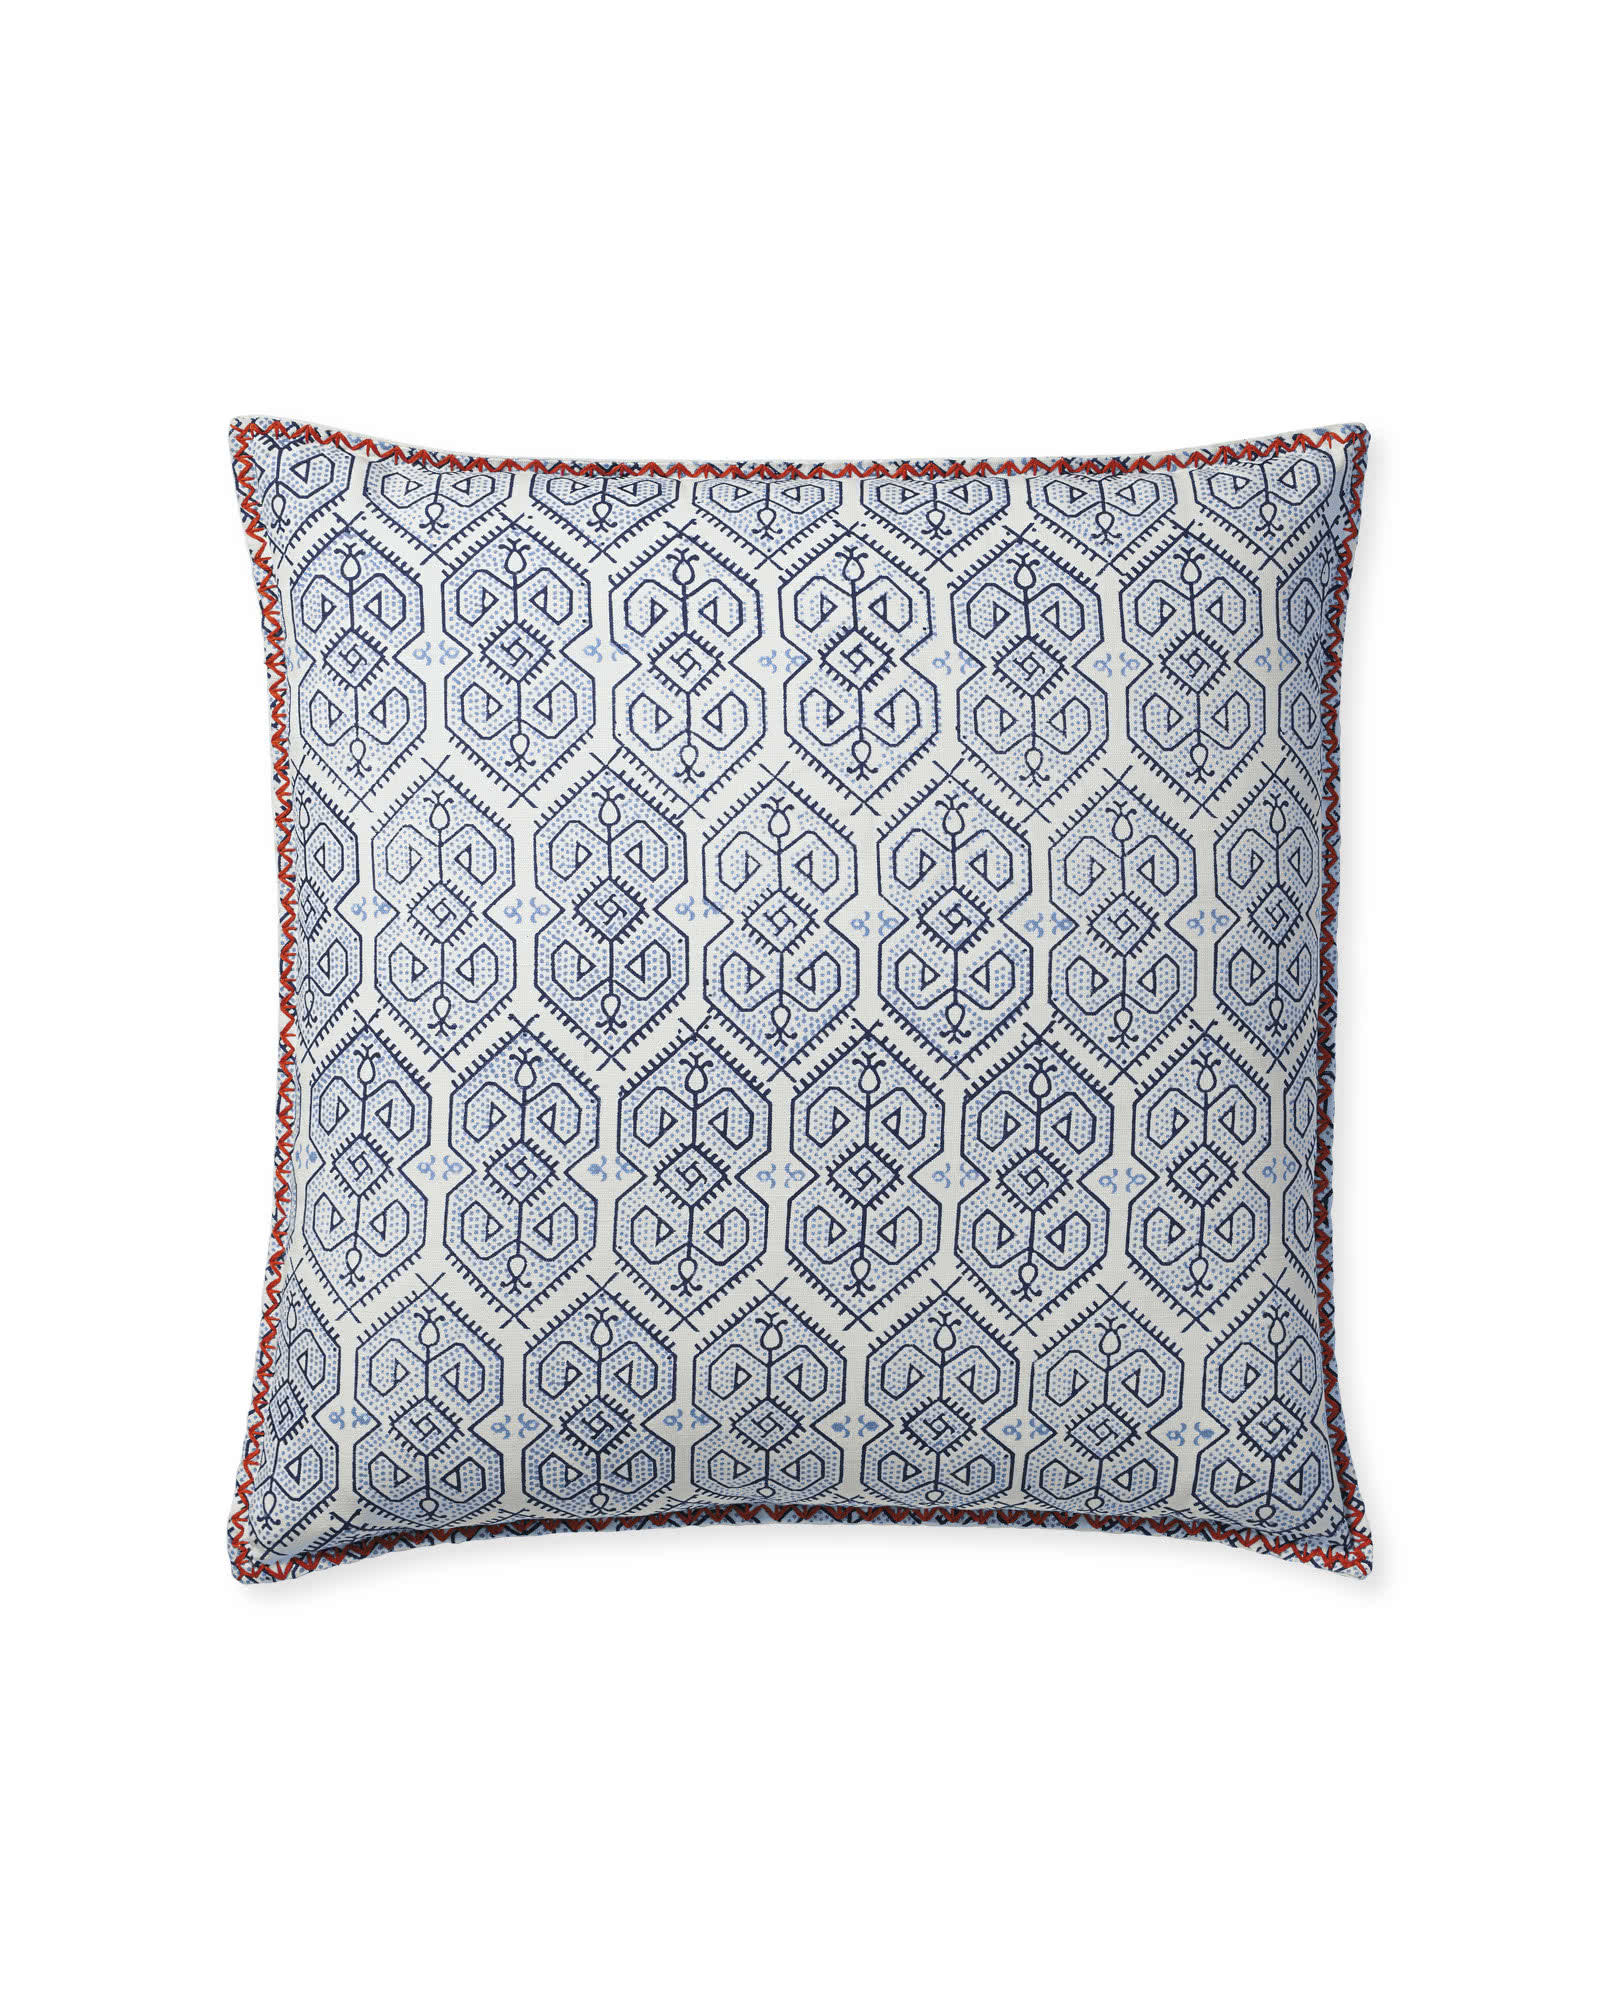 Jamesport Pillow Cover, Navy